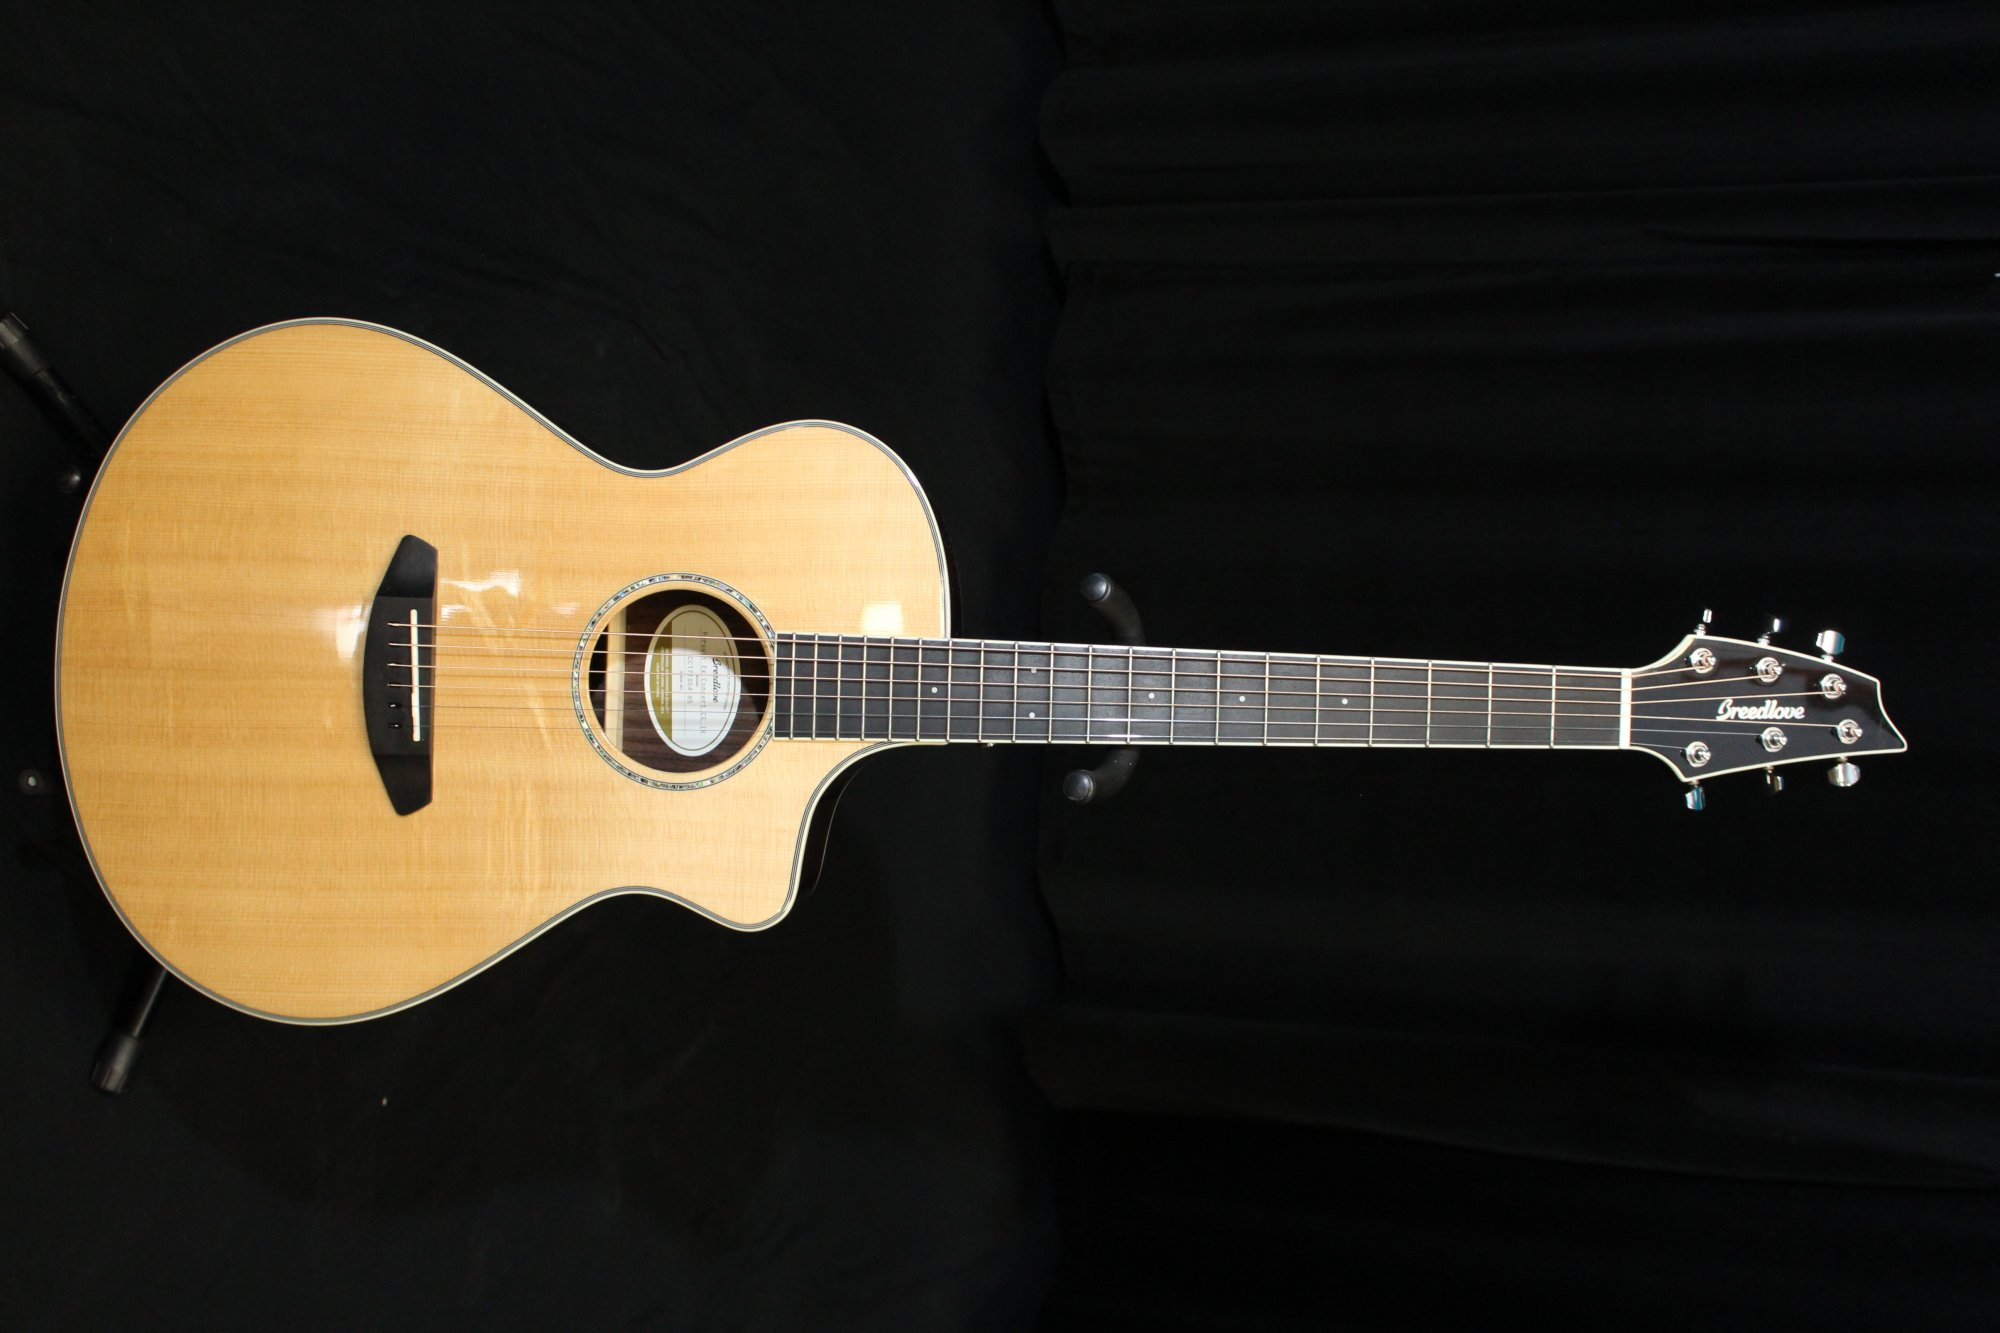 Preowned Breedlove Pursuit Exotic Concert CE Acoustic-Electric Guitar w/Bag - Indian Rosewood